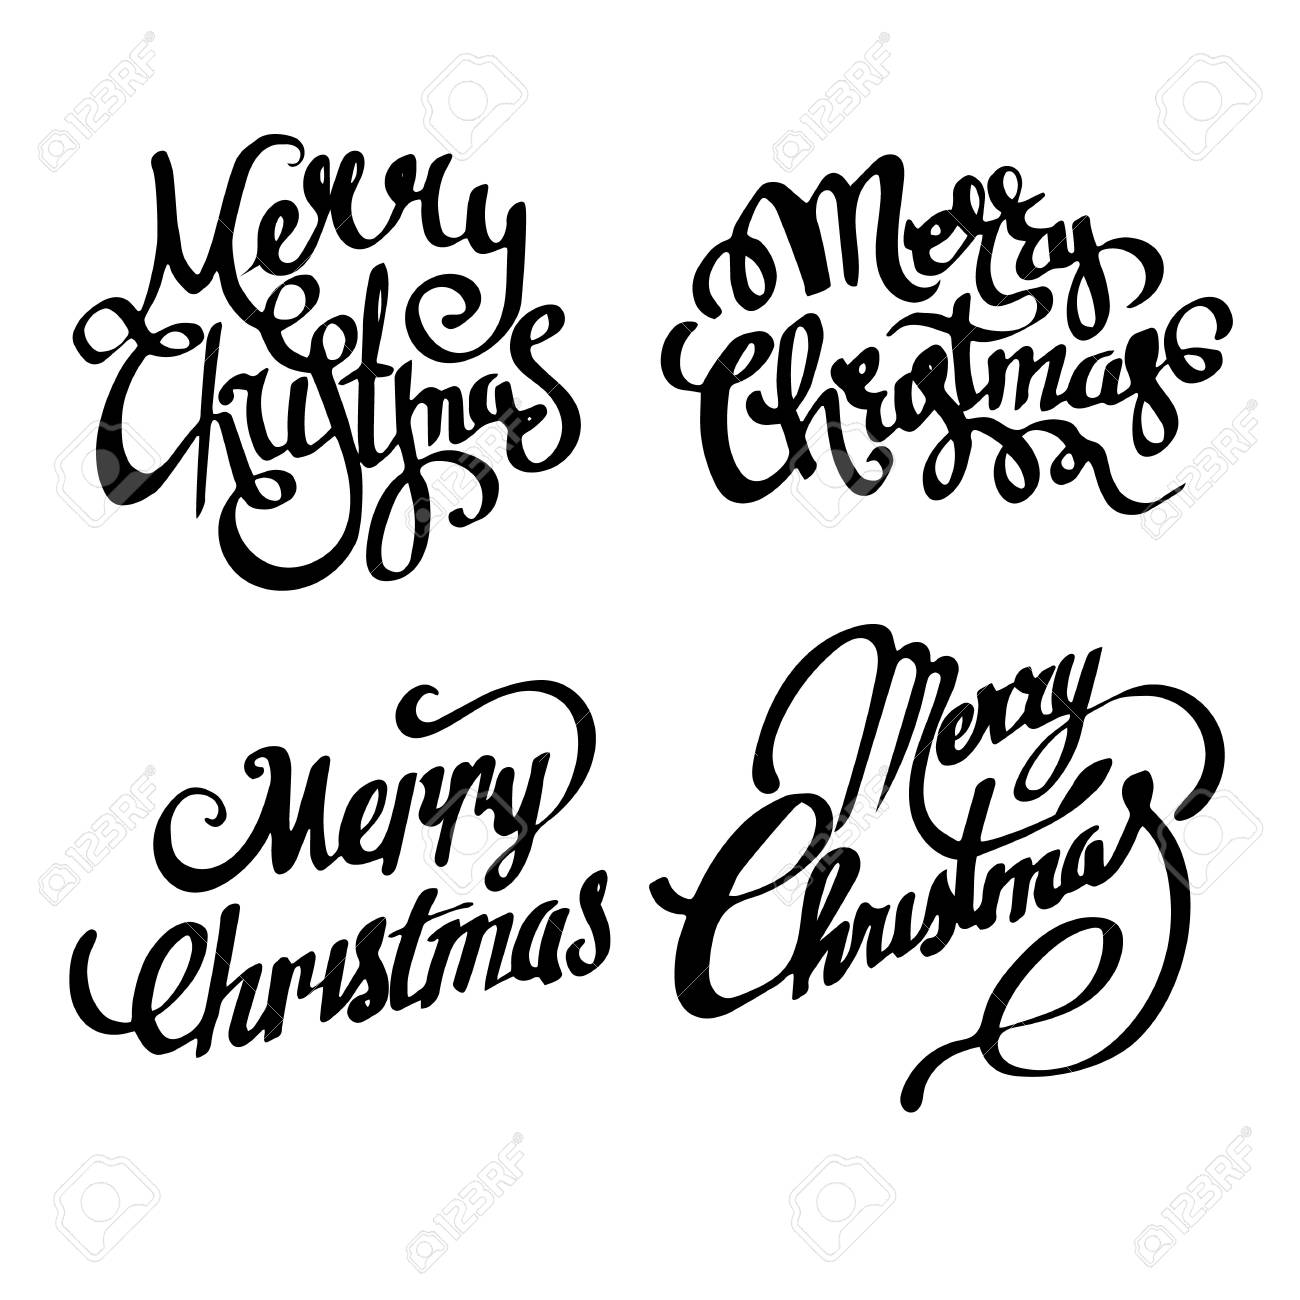 Calligraphy Fonts W Christmas Banners Merry Christmas Handwritten Calligraphy Font